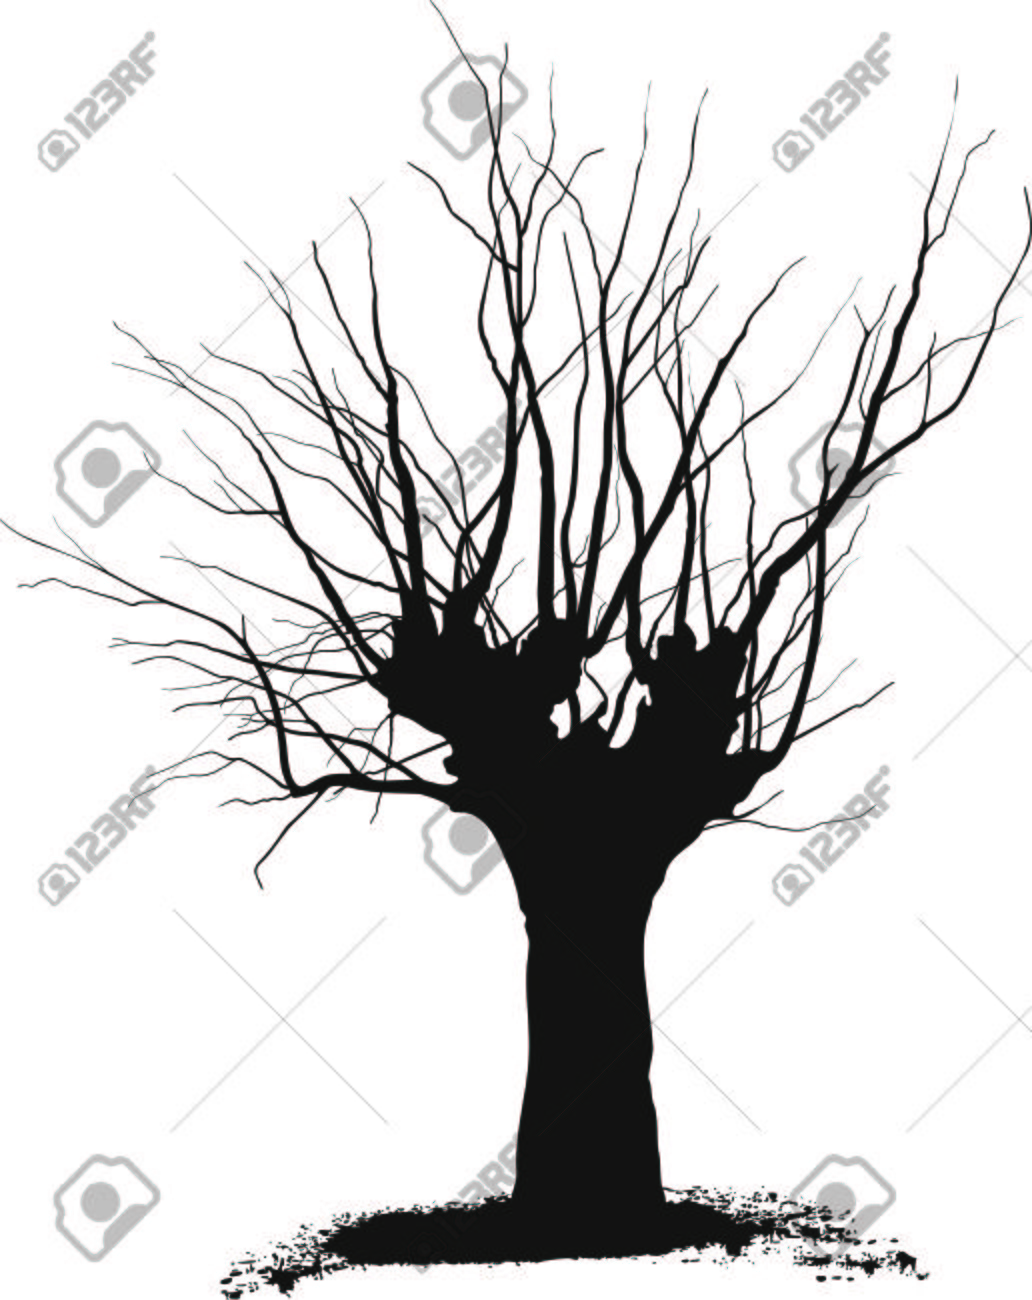 1032x1300 Silhouette Acacia Tree Black Drawings On A White Background